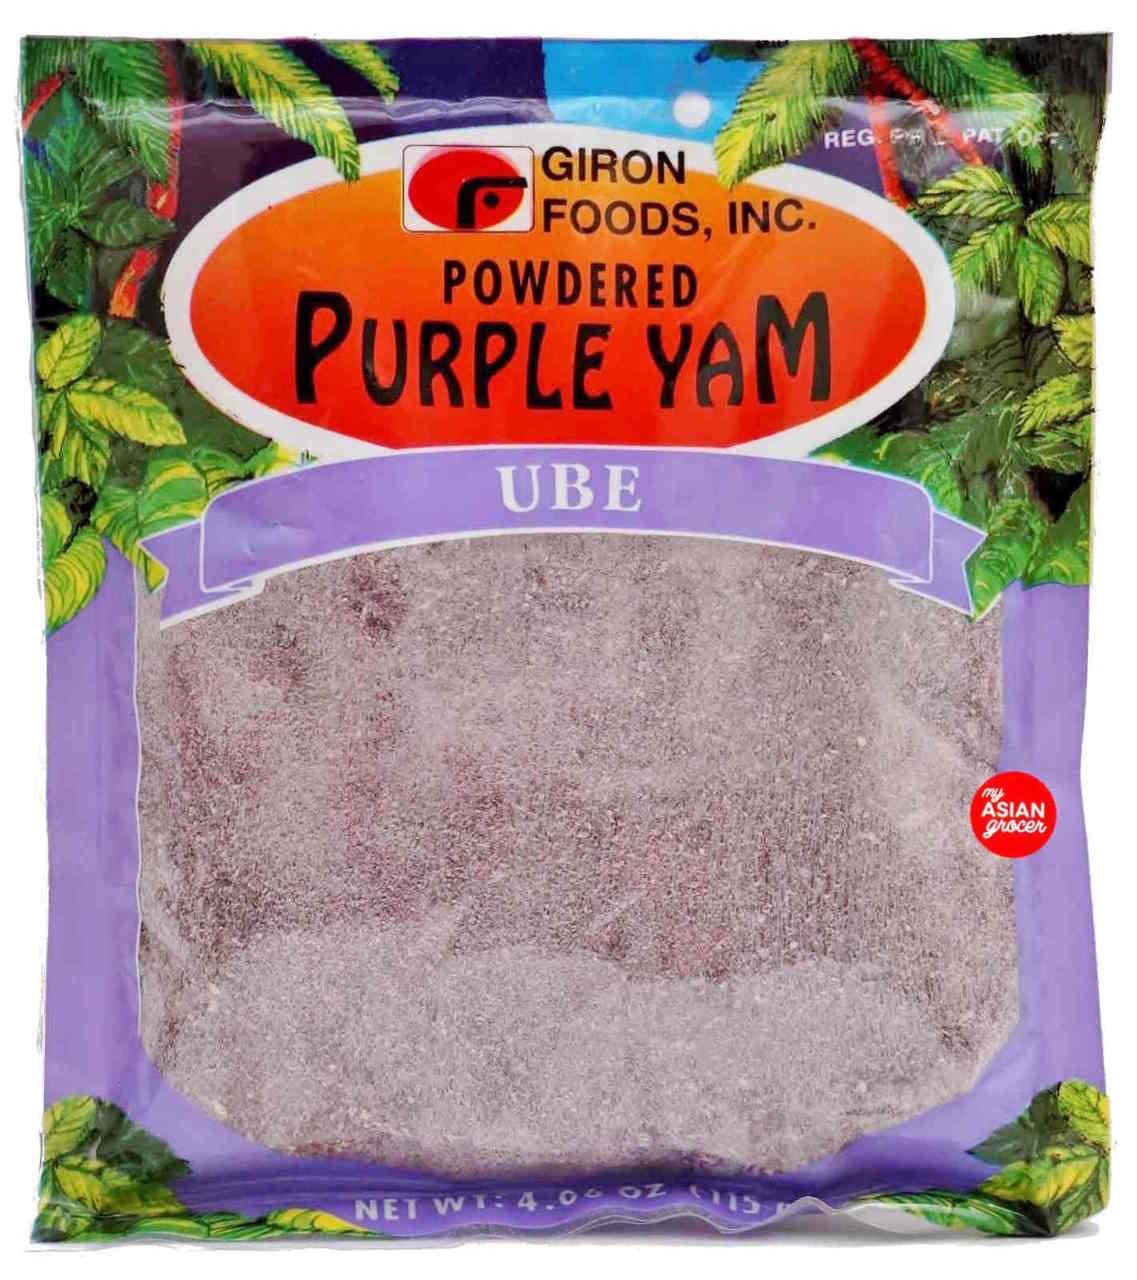 Giron Foods Powdered Purple Yam Ube 115g